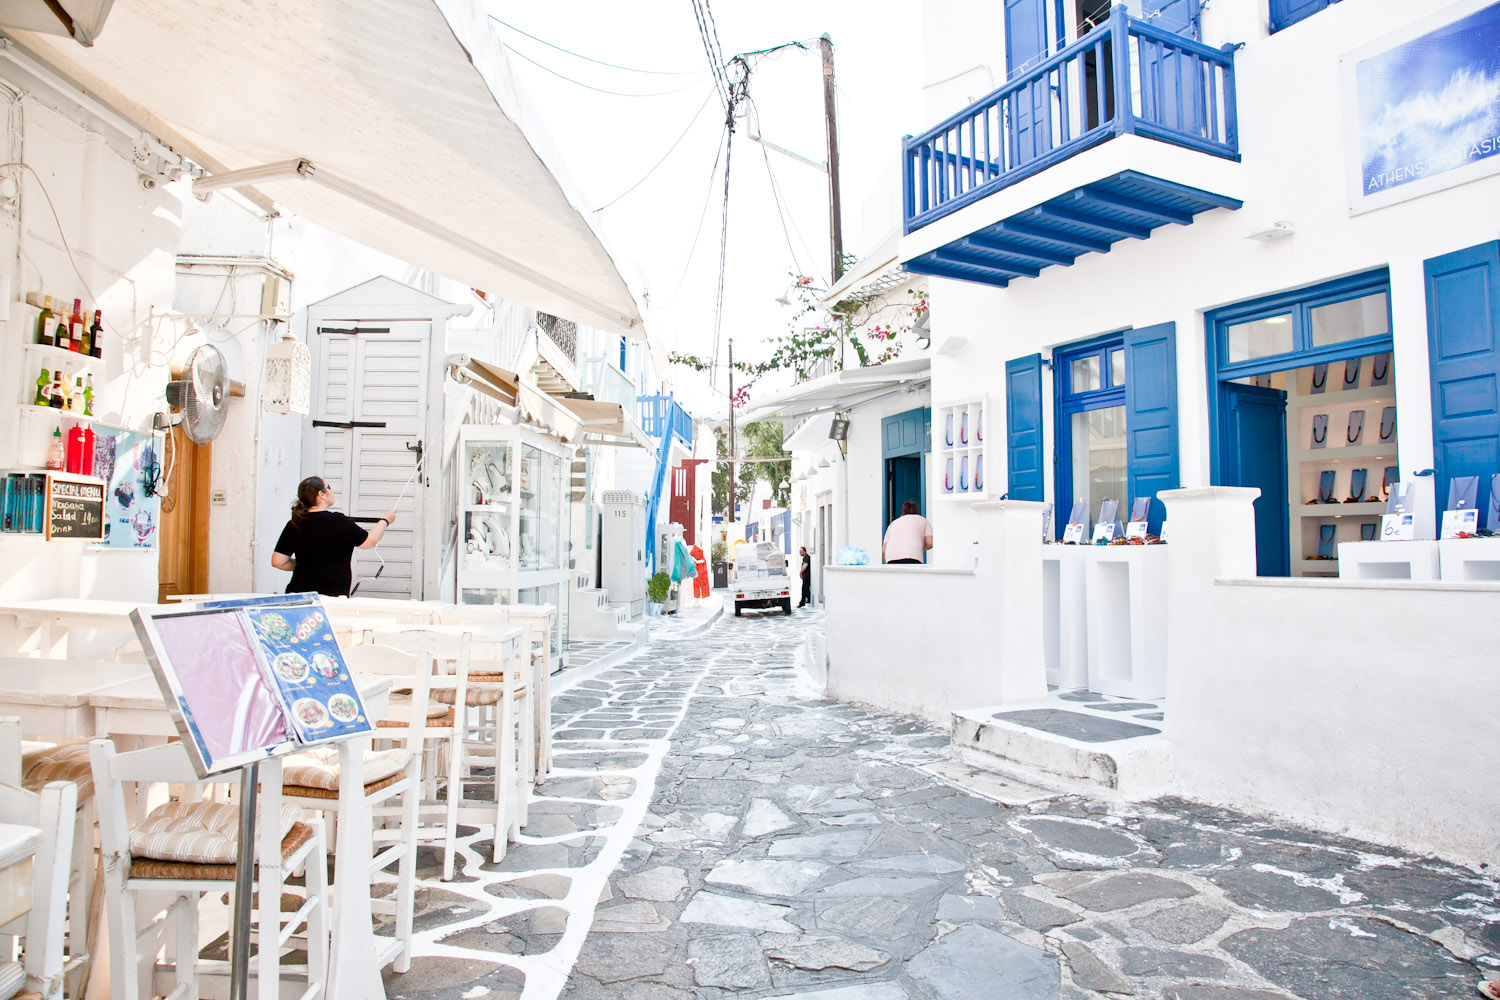 IMG_3774-mykonos-greece-cruise-day-trip-travel-trisa-taro.jpg